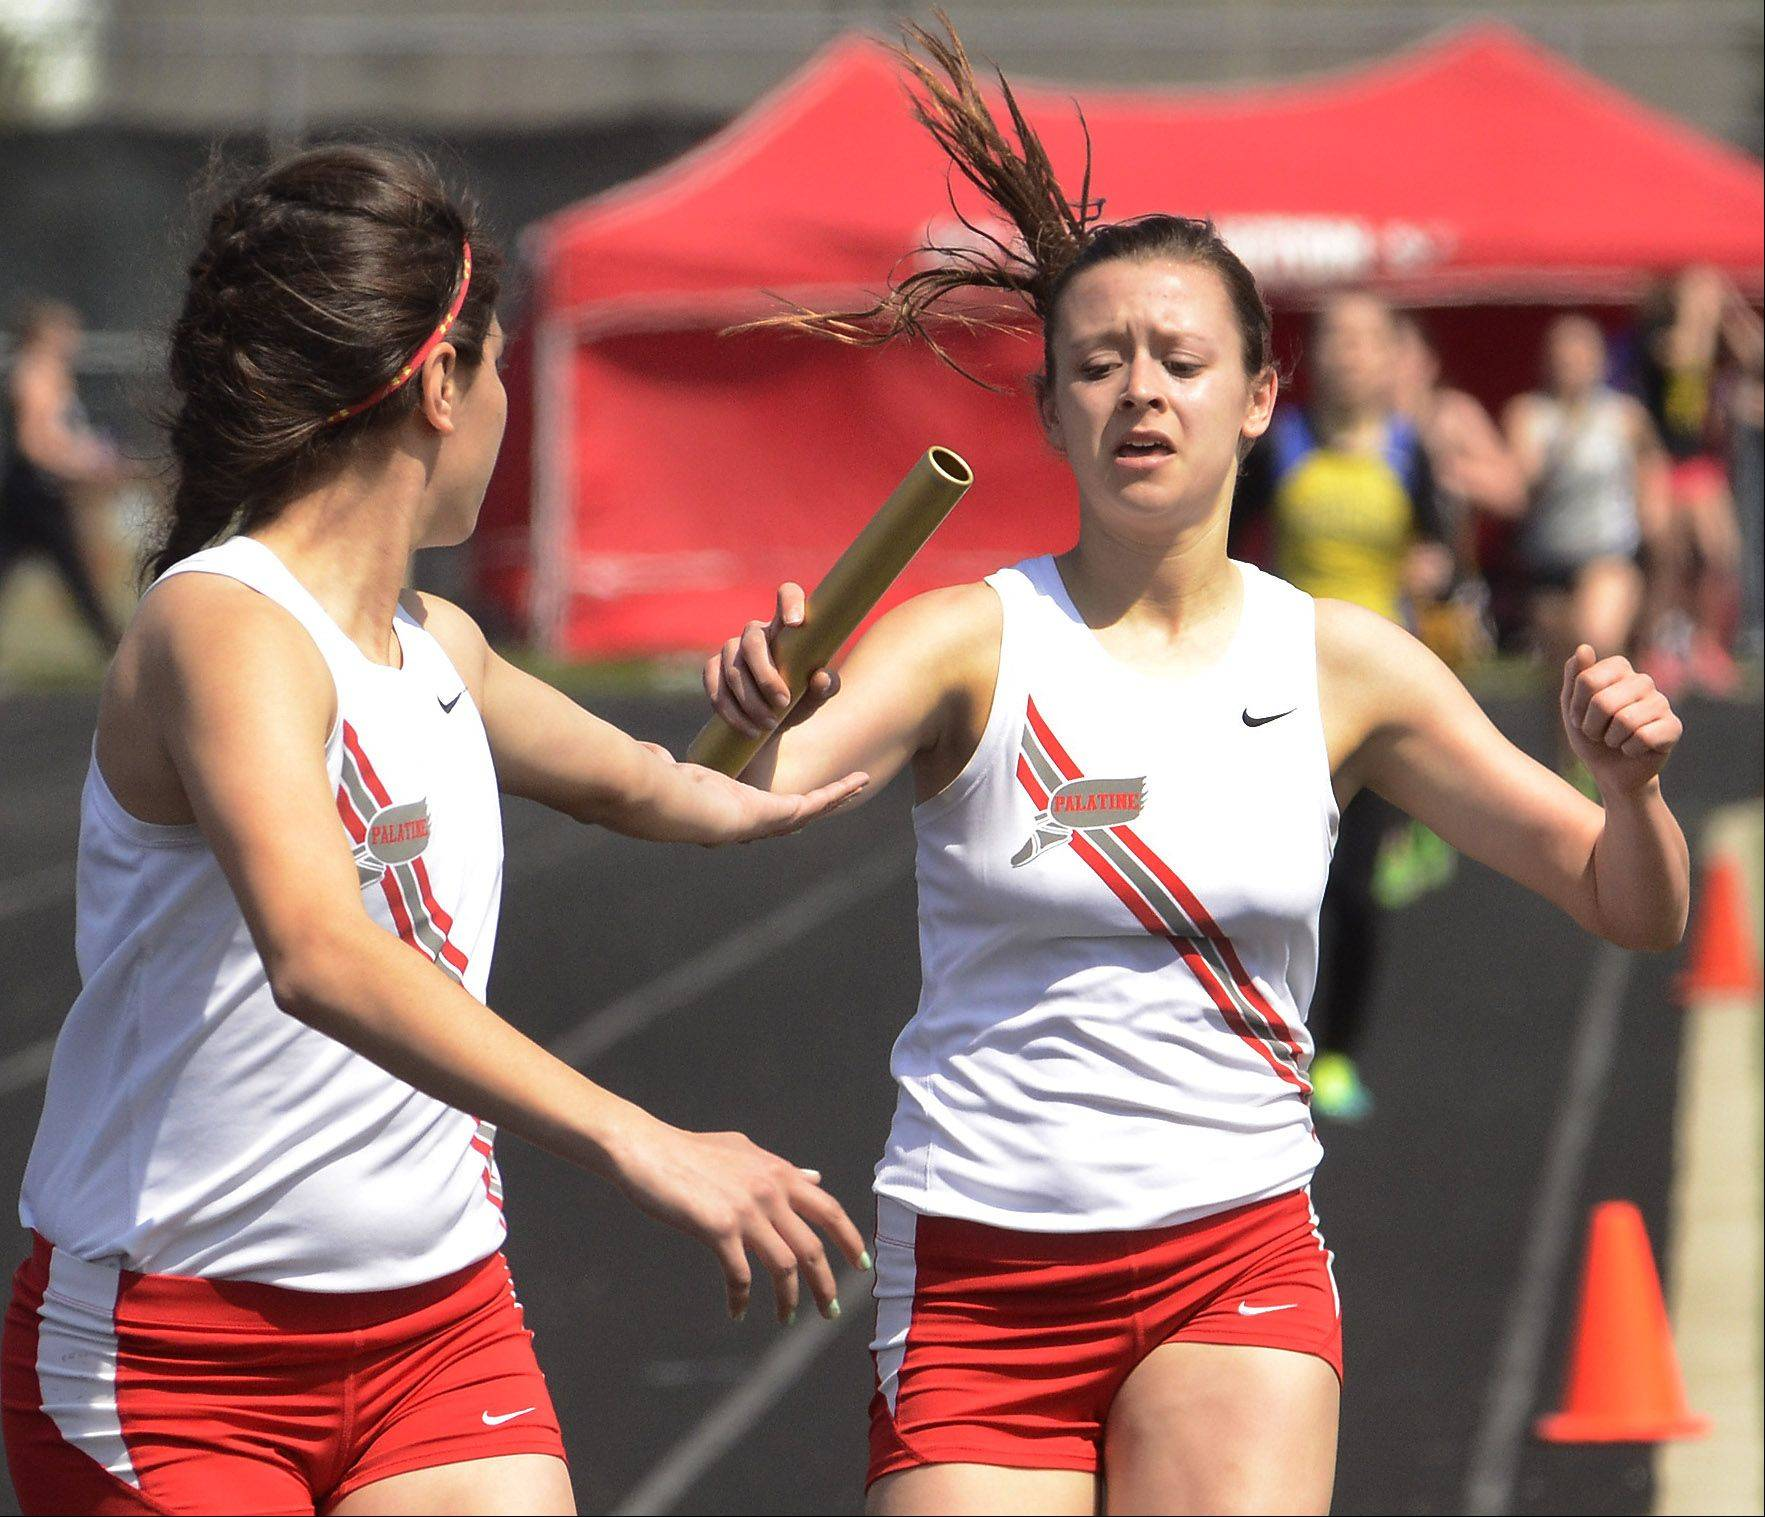 Palatine's Tess Wasowicz, right, hands off to Lorena Soriaba on the first leg of the distance medley at the Palatine Relays on Saturday. Palatine won the event in 12:31.48.